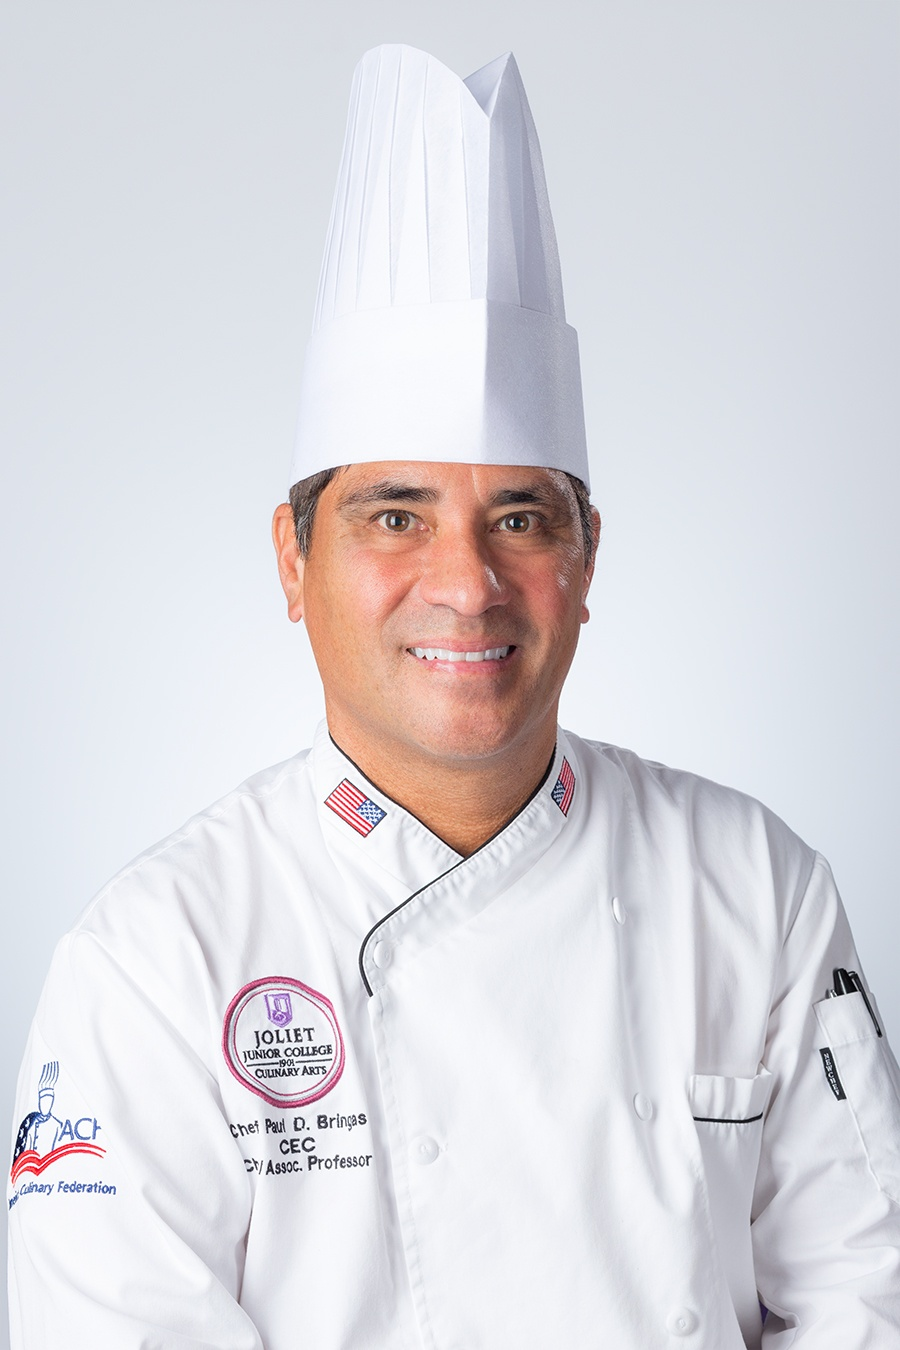 13 things you didn't know about your professors chef paul bringas culinary arts jjc joliet junior college